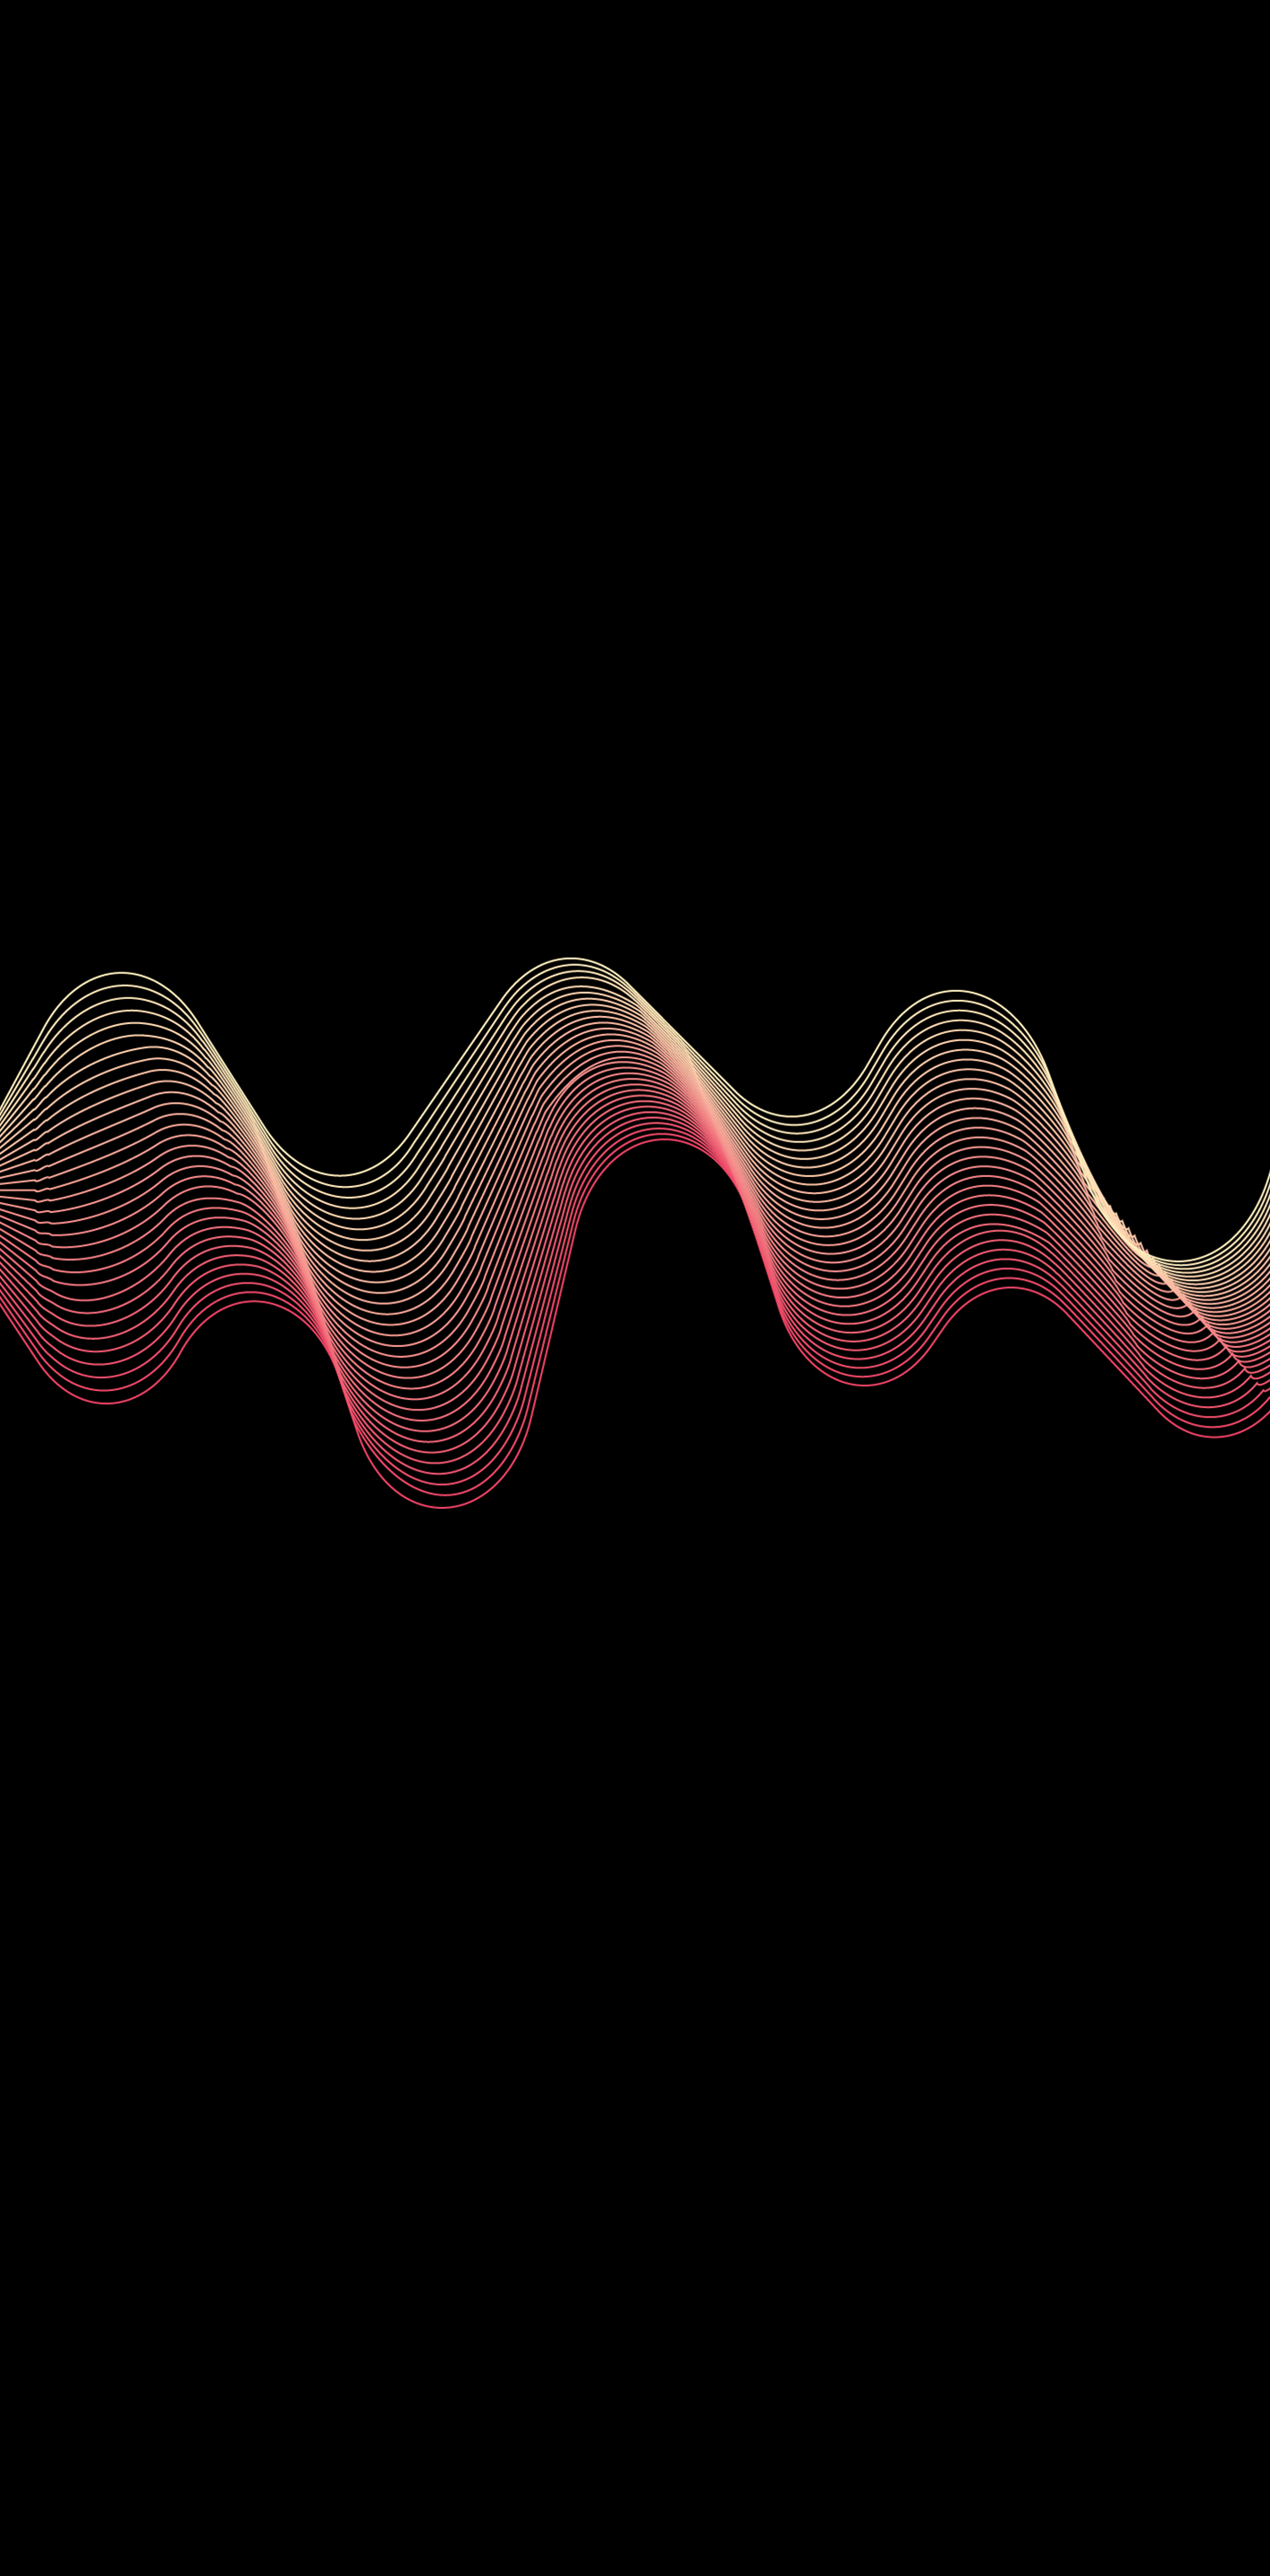 Waveform wallpaper sreeragag7 iDownloadBlog 7